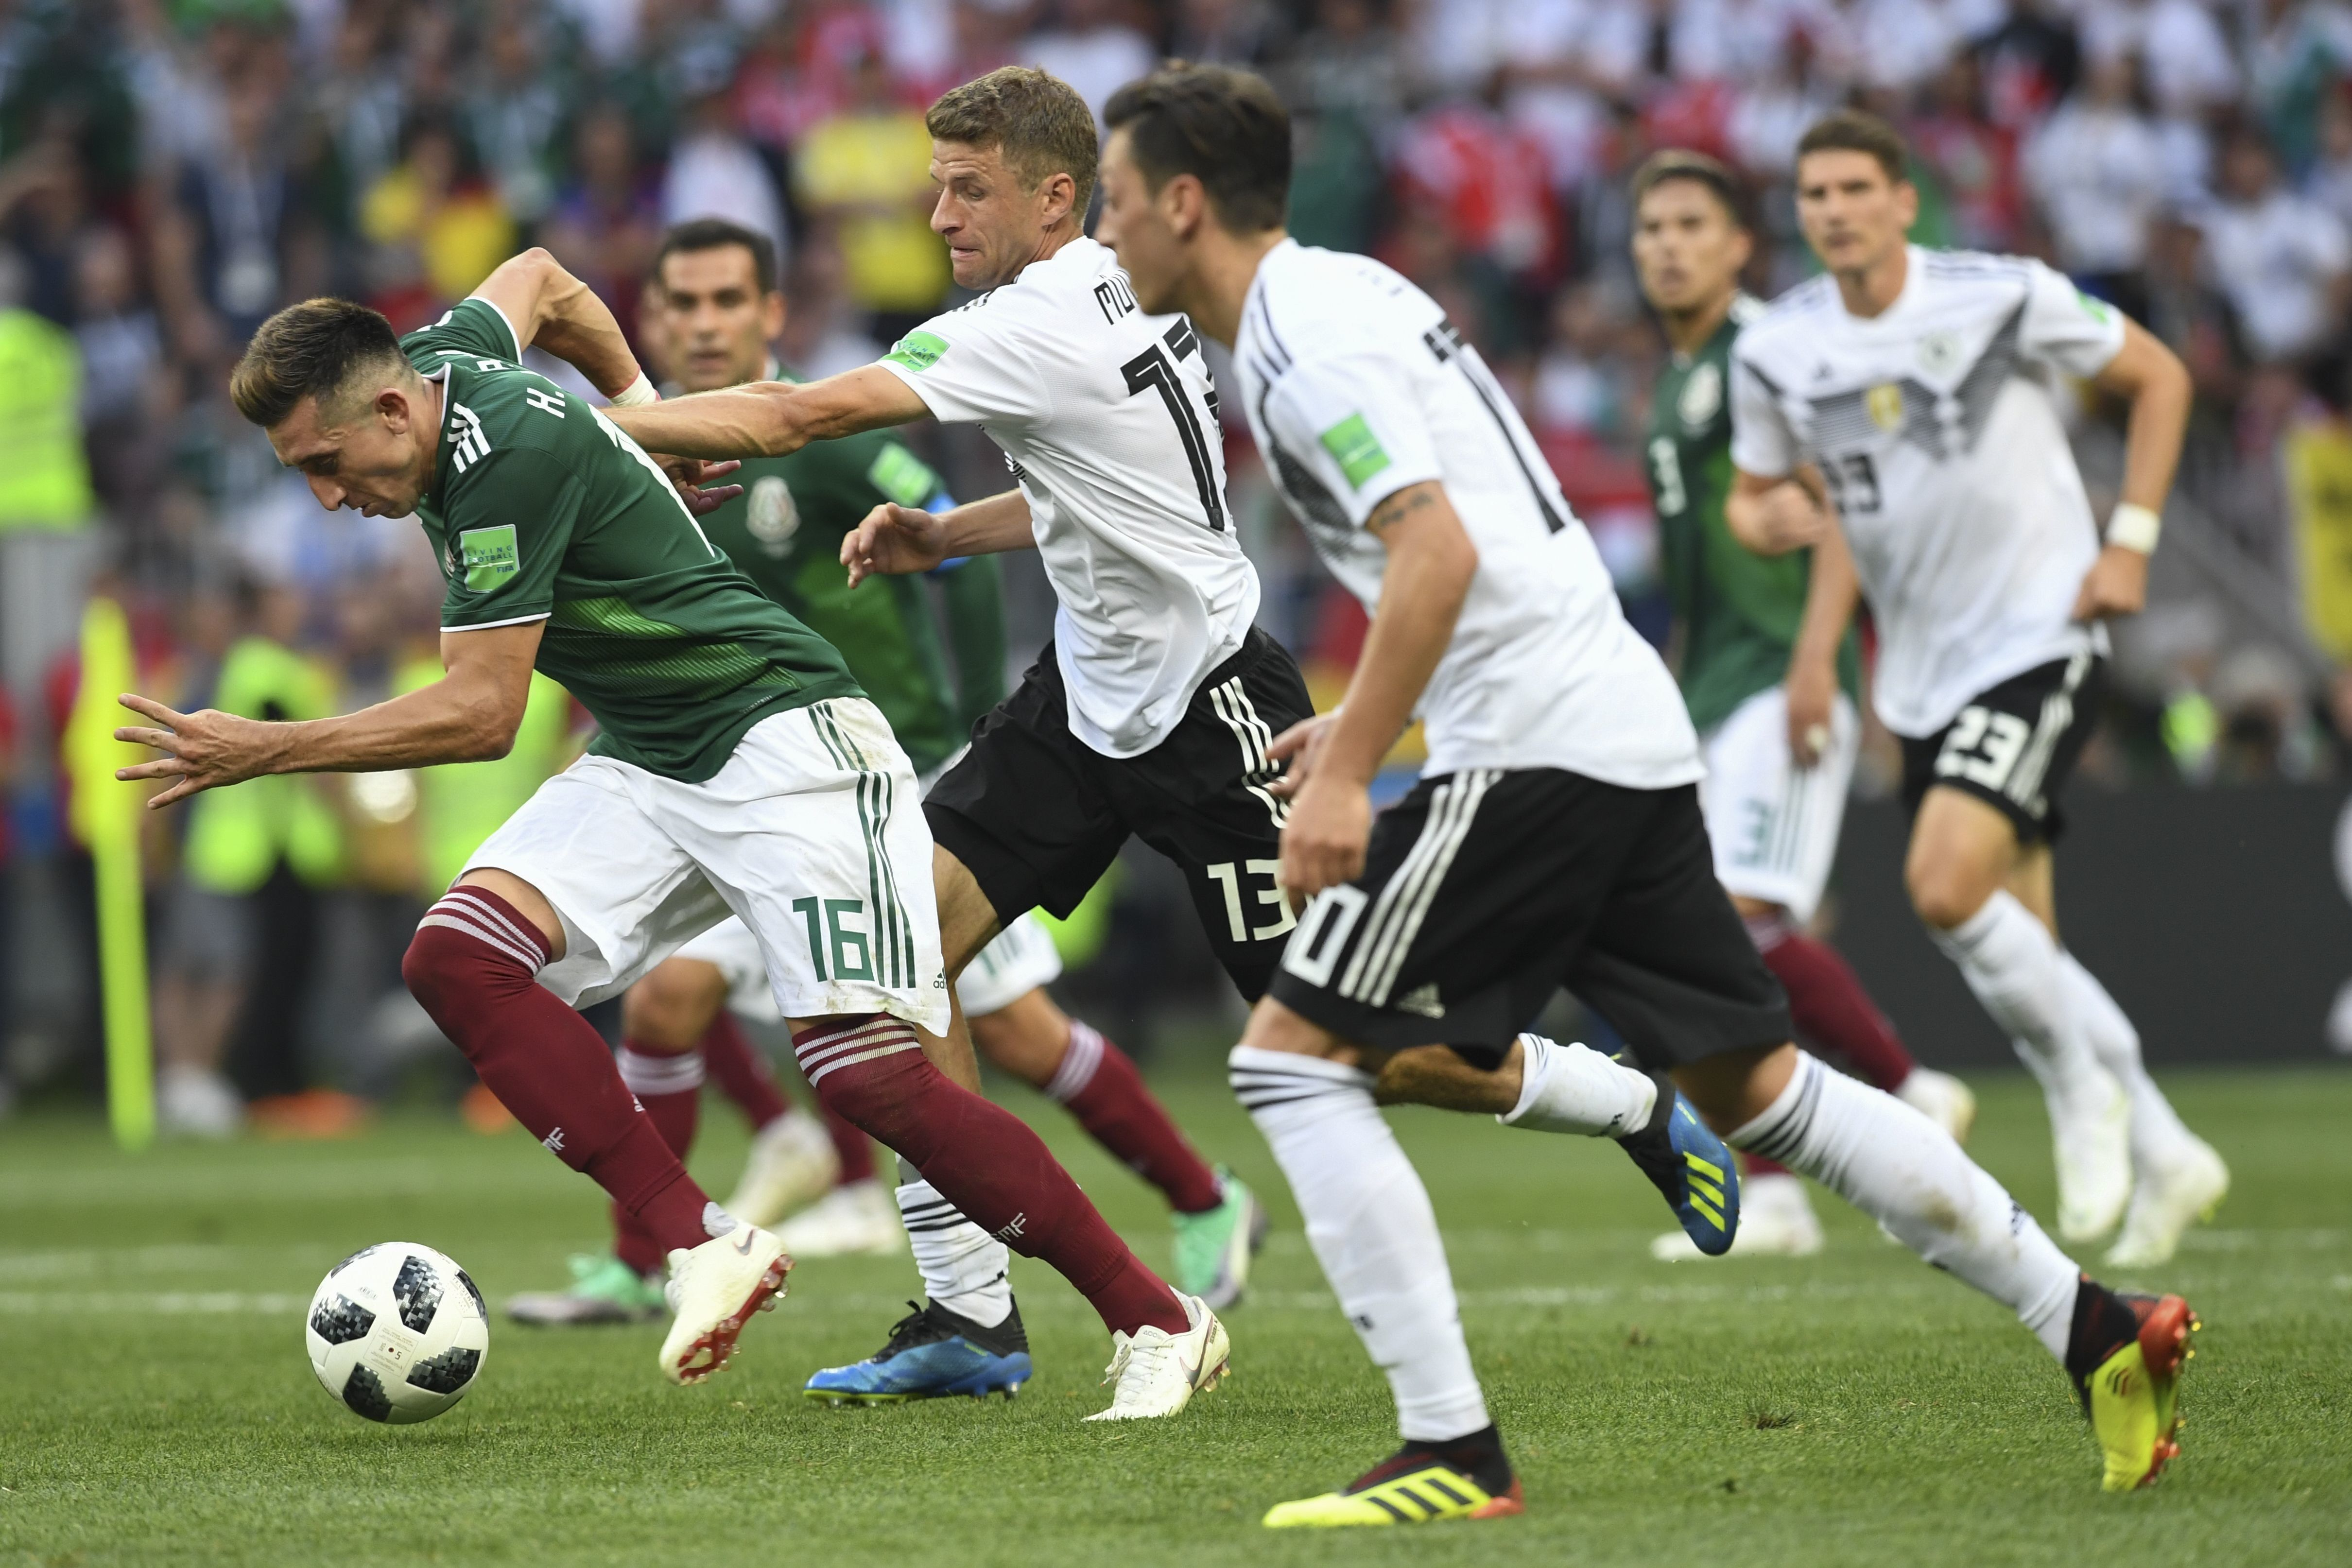 Mexico's midfielder Hector Herrera (L) is marked by Germany's forward Thomas Mueller (2nd-L) during the Russia 2018 World Cup Group F football match between Germany and Mexico at the Luzhniki Stadium in Moscow on June 17, 2018. (Photo by Francisco LEONG / AFP) / RESTRICTED TO EDITORIAL USE - NO MOBILE PUSH ALERTS/DOWNLOADS        (Photo credit should read FRANCISCO LEONG/AFP/Getty Images)